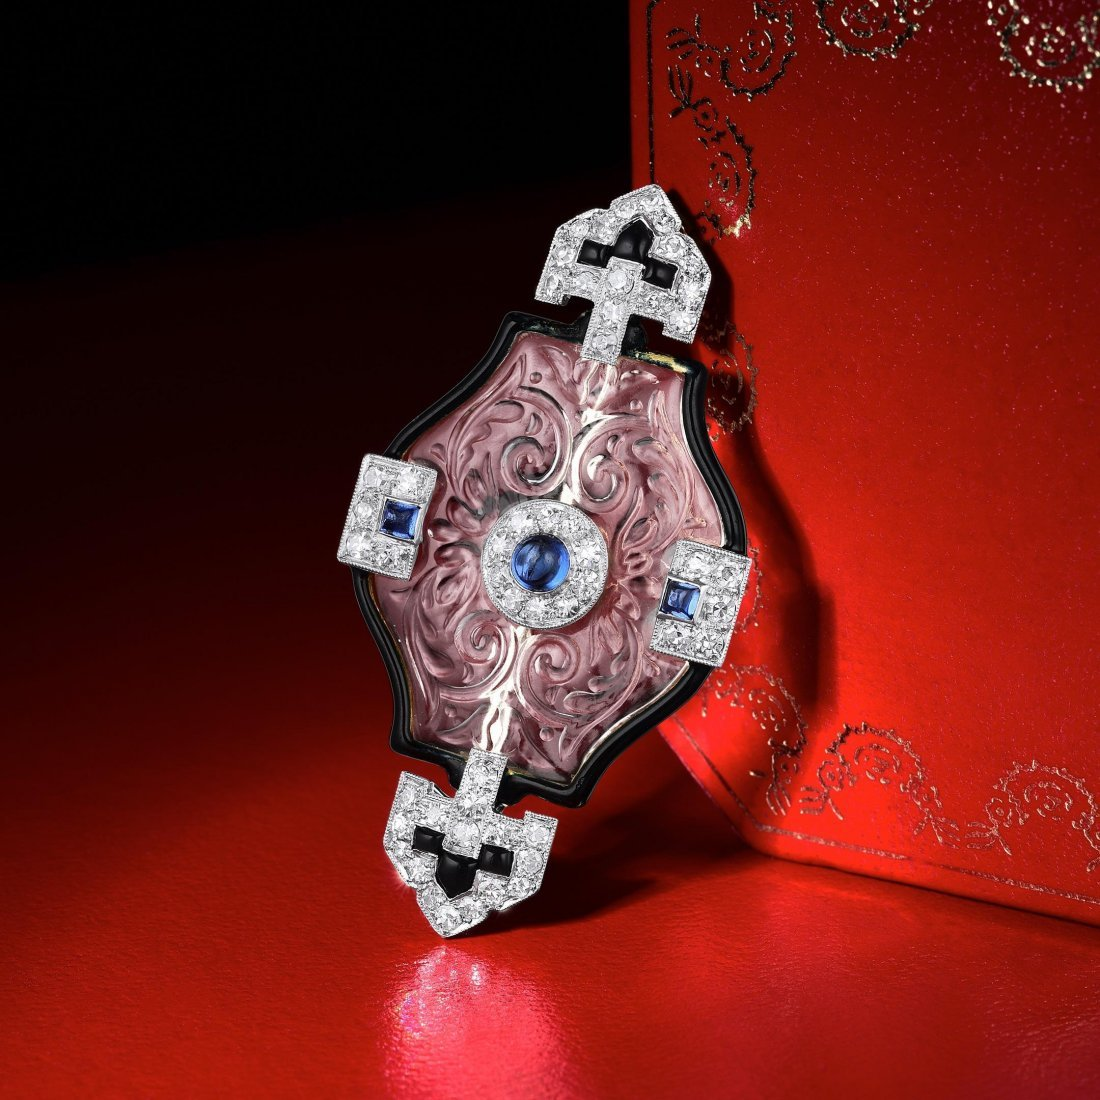 Cartier Art Deco Rock Crystal and Diamond Brooch